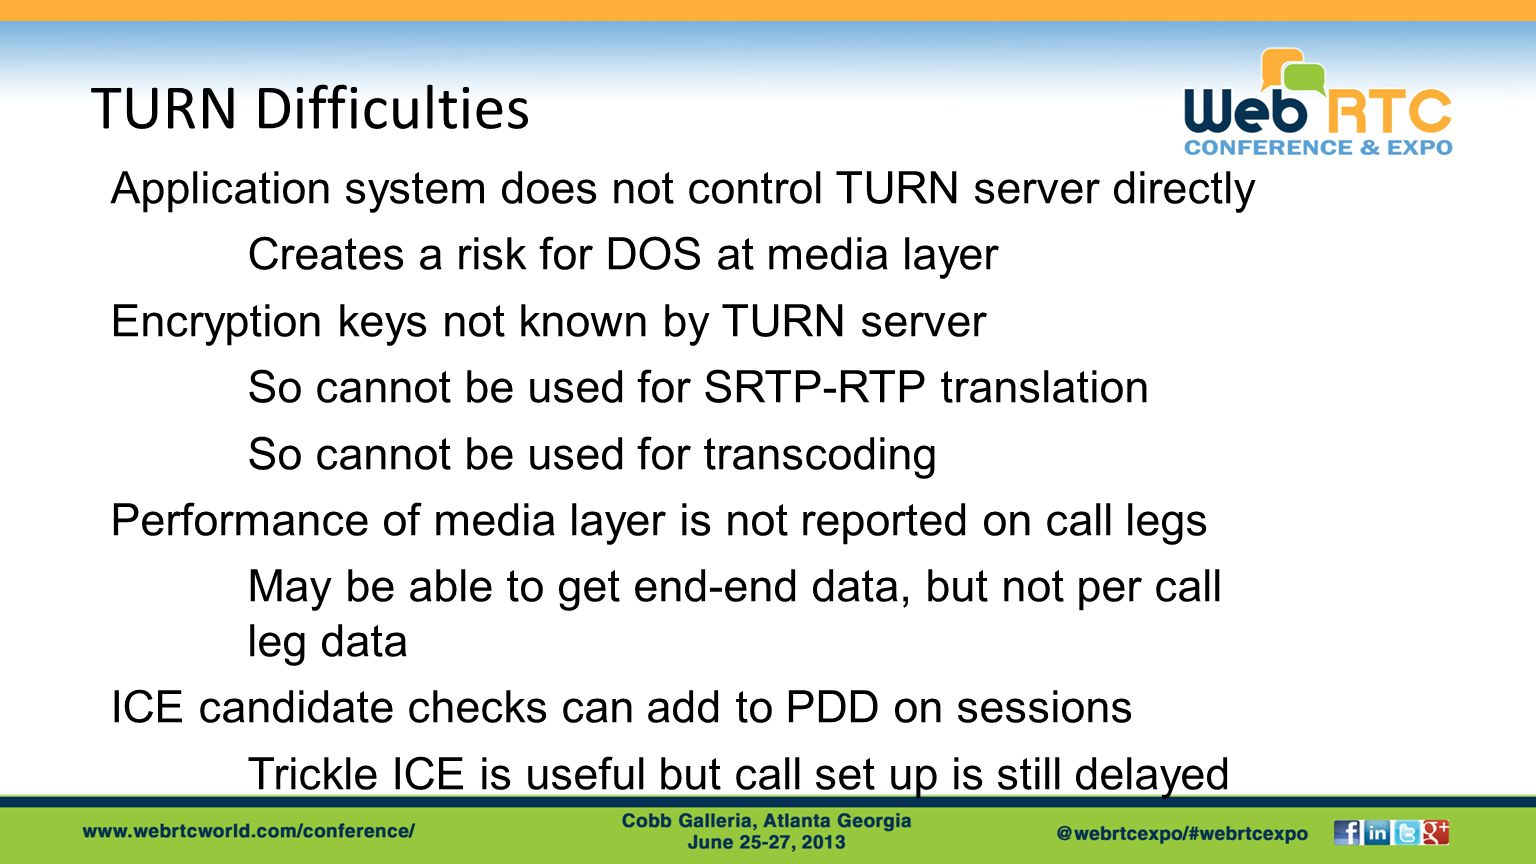 TURN Difficulties Application system does not control TURN server directly Creates a risk for DOS at media layer Encryption keys not known by TURN server So cannot be used for SRTP-RTP translation So cannot be used for transcoding Performance of media layer is not reported on call legs May be able to get end-end data, but not per call leg data ICE candidate checks can add to PDD on sessions Trickle ICE is useful but call set up is still delayed